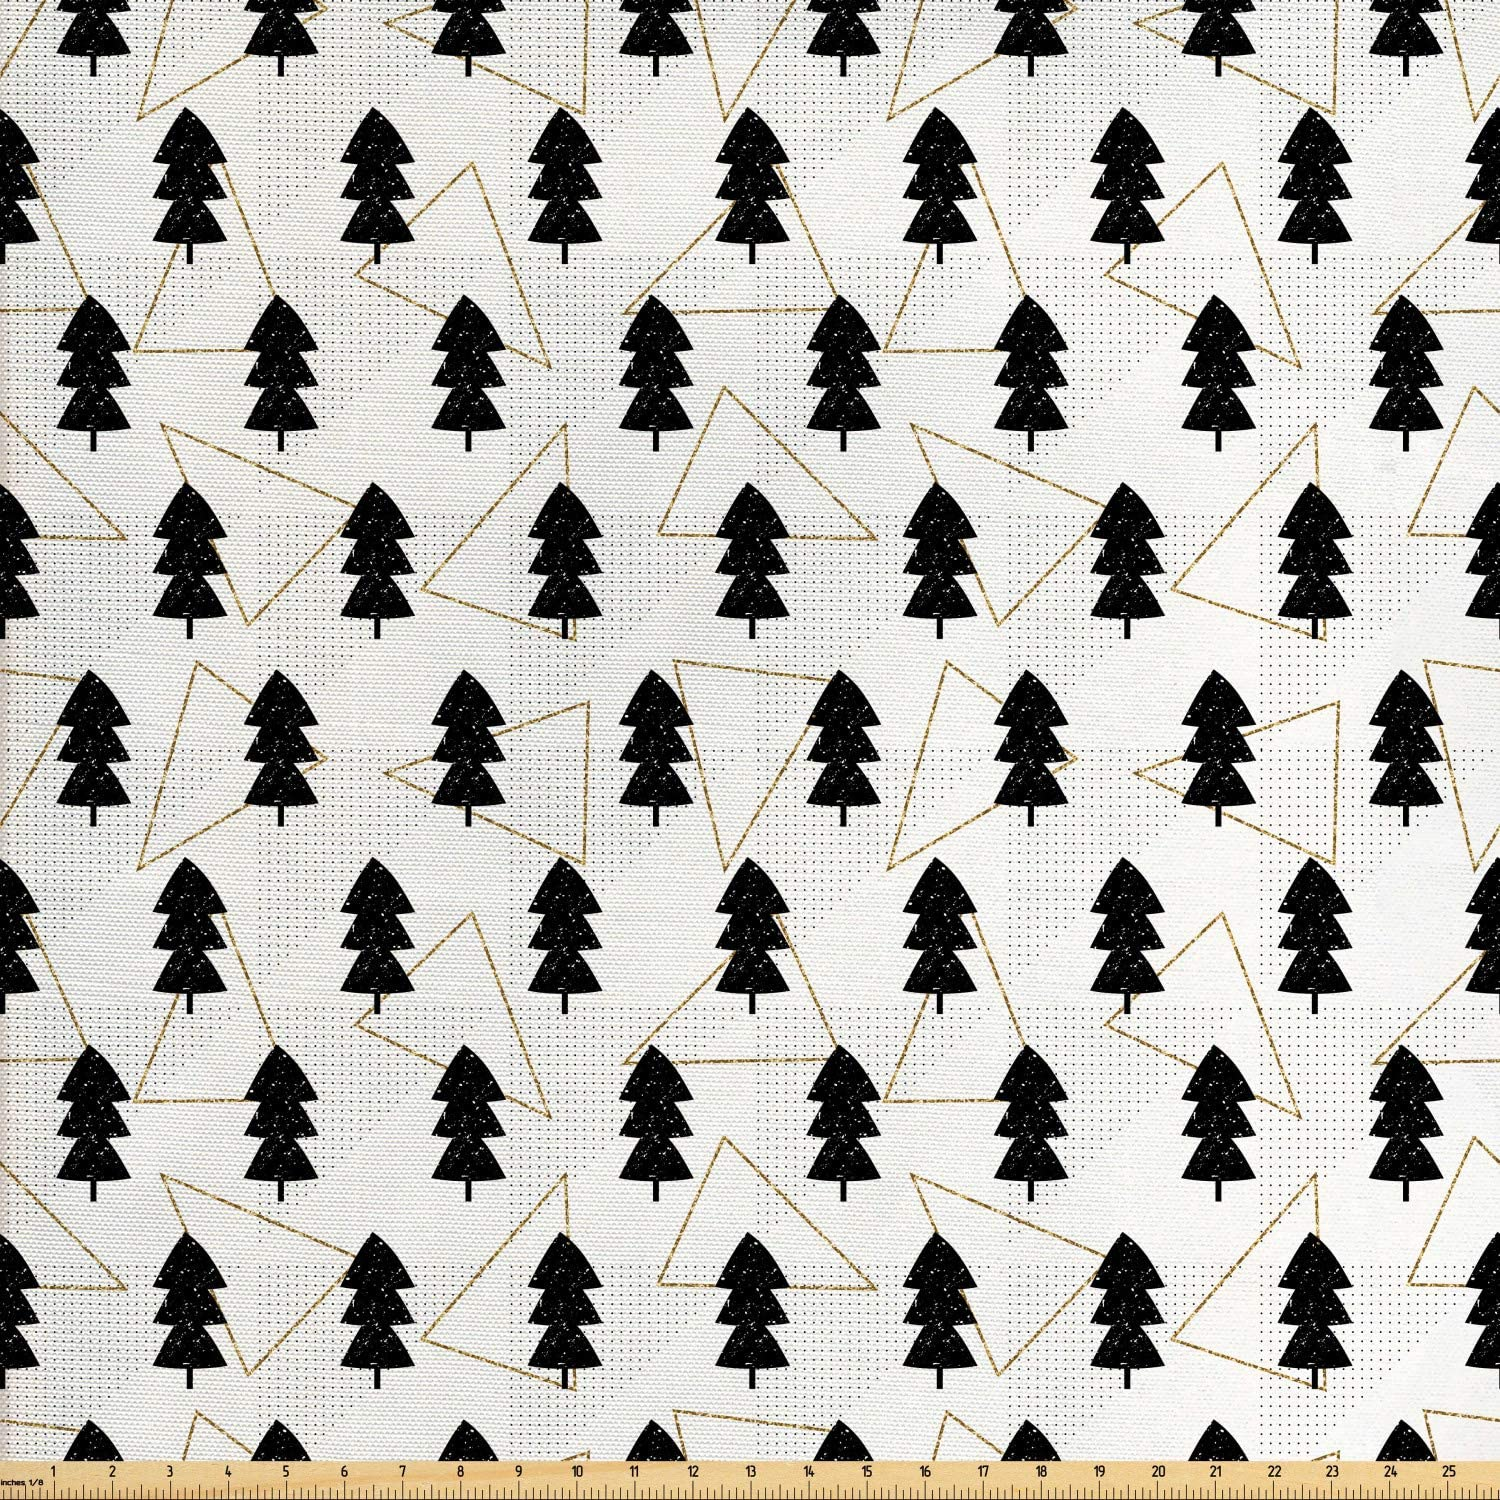 Lunarable Tree Fabric by The Yard, Woodland Pattern with Grunge Effect Black Pine Trees Forest Triangles and Dots, Decorative Fabric for Upholstery and Home Accents, 2 Yards, Yellow White